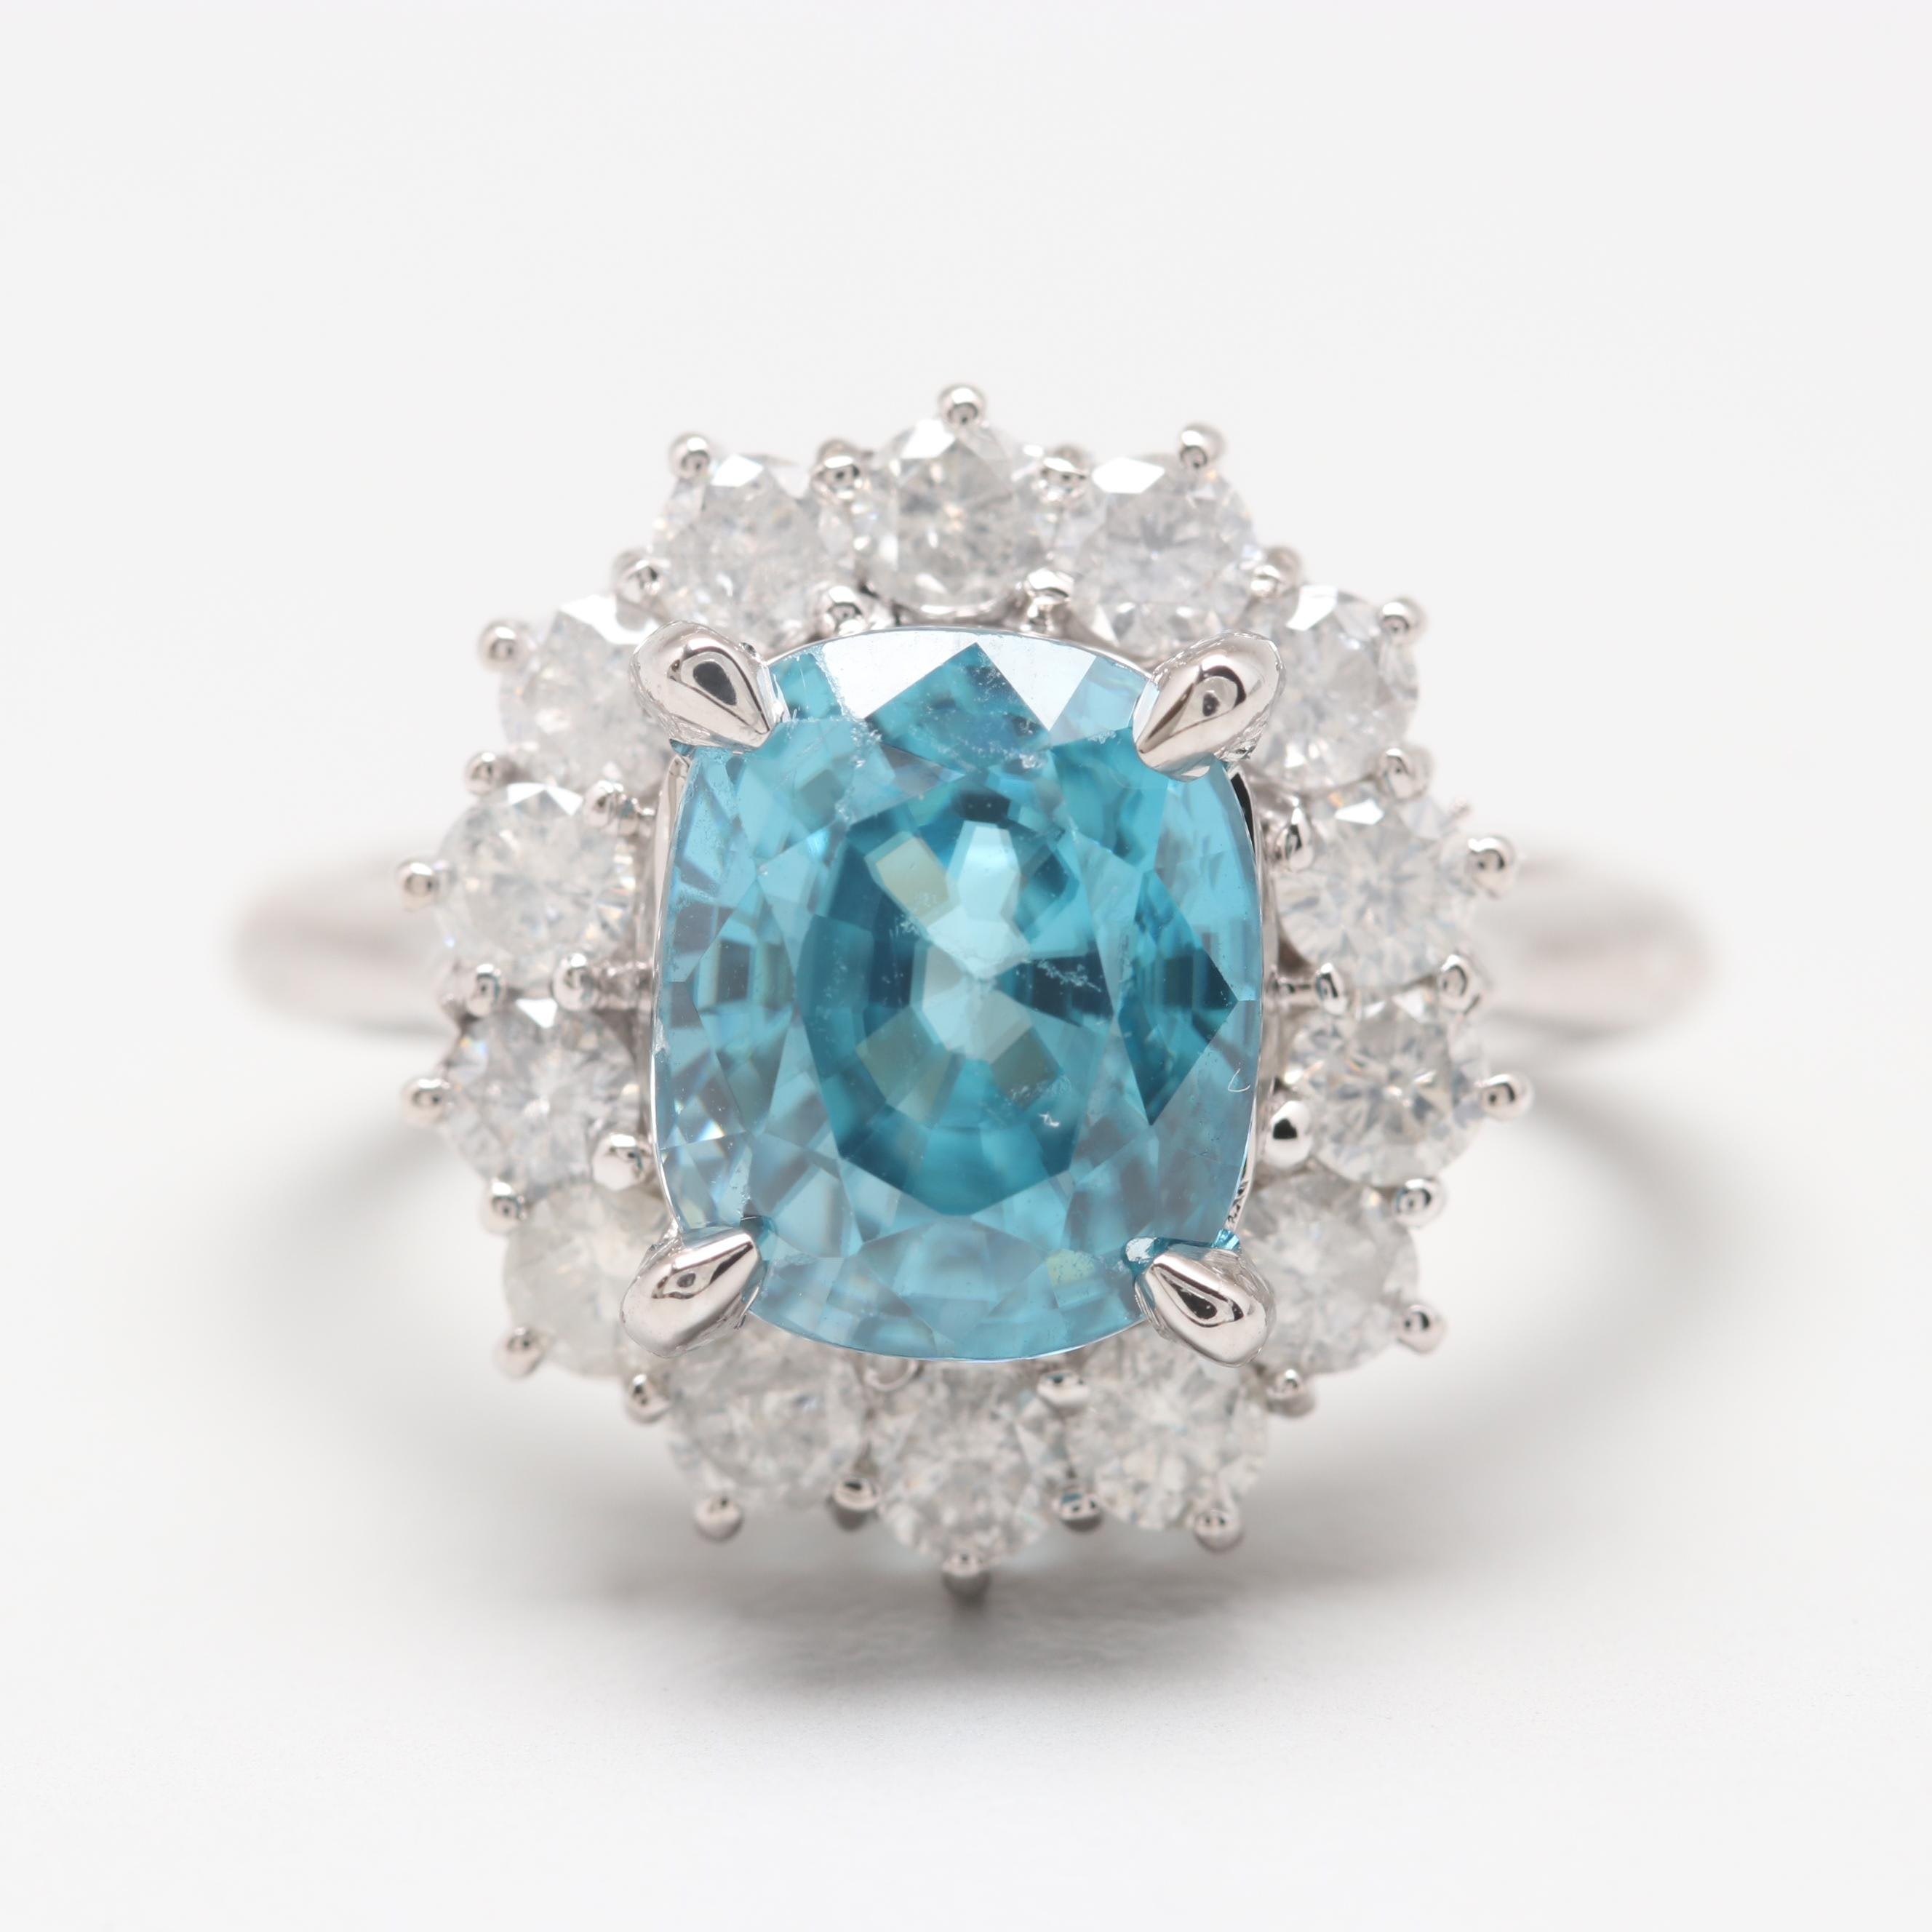 14K White Gold 5.21 CT Blue Zircon and Diamond Ring